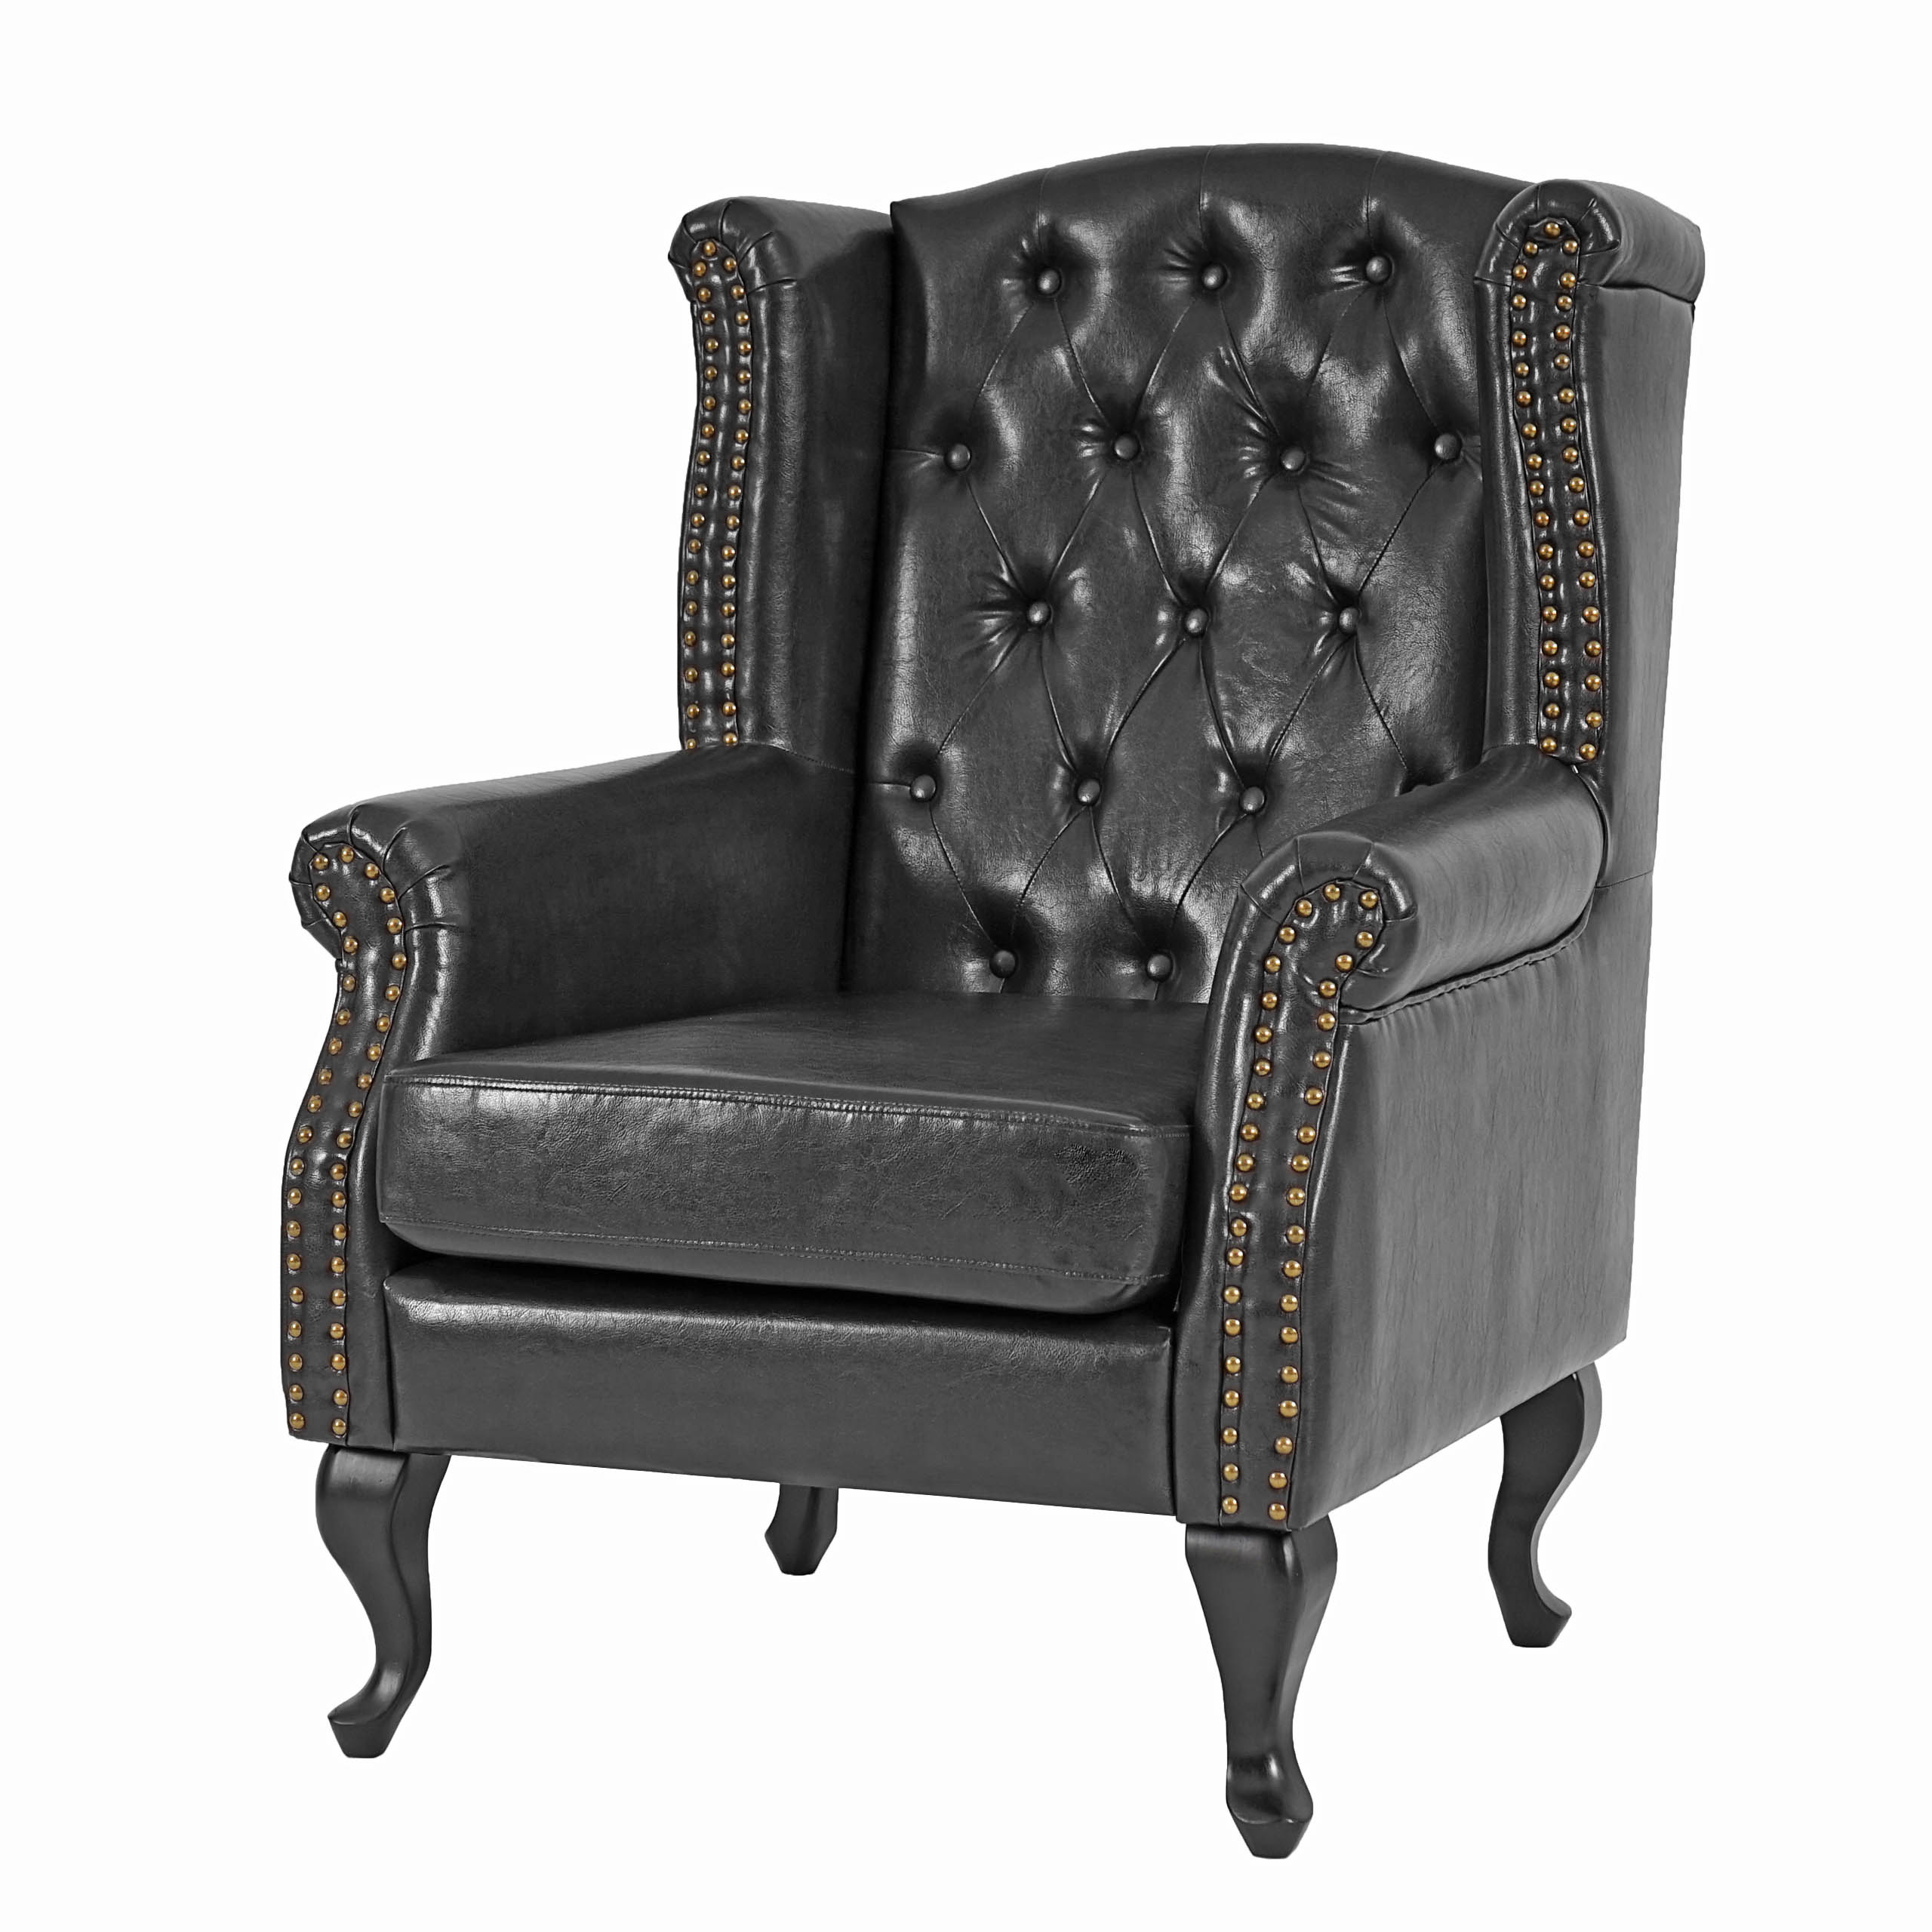 sessel relaxsessel clubsessel ohrensessel chesterfield kunstleder schwarz ohne ottomane. Black Bedroom Furniture Sets. Home Design Ideas